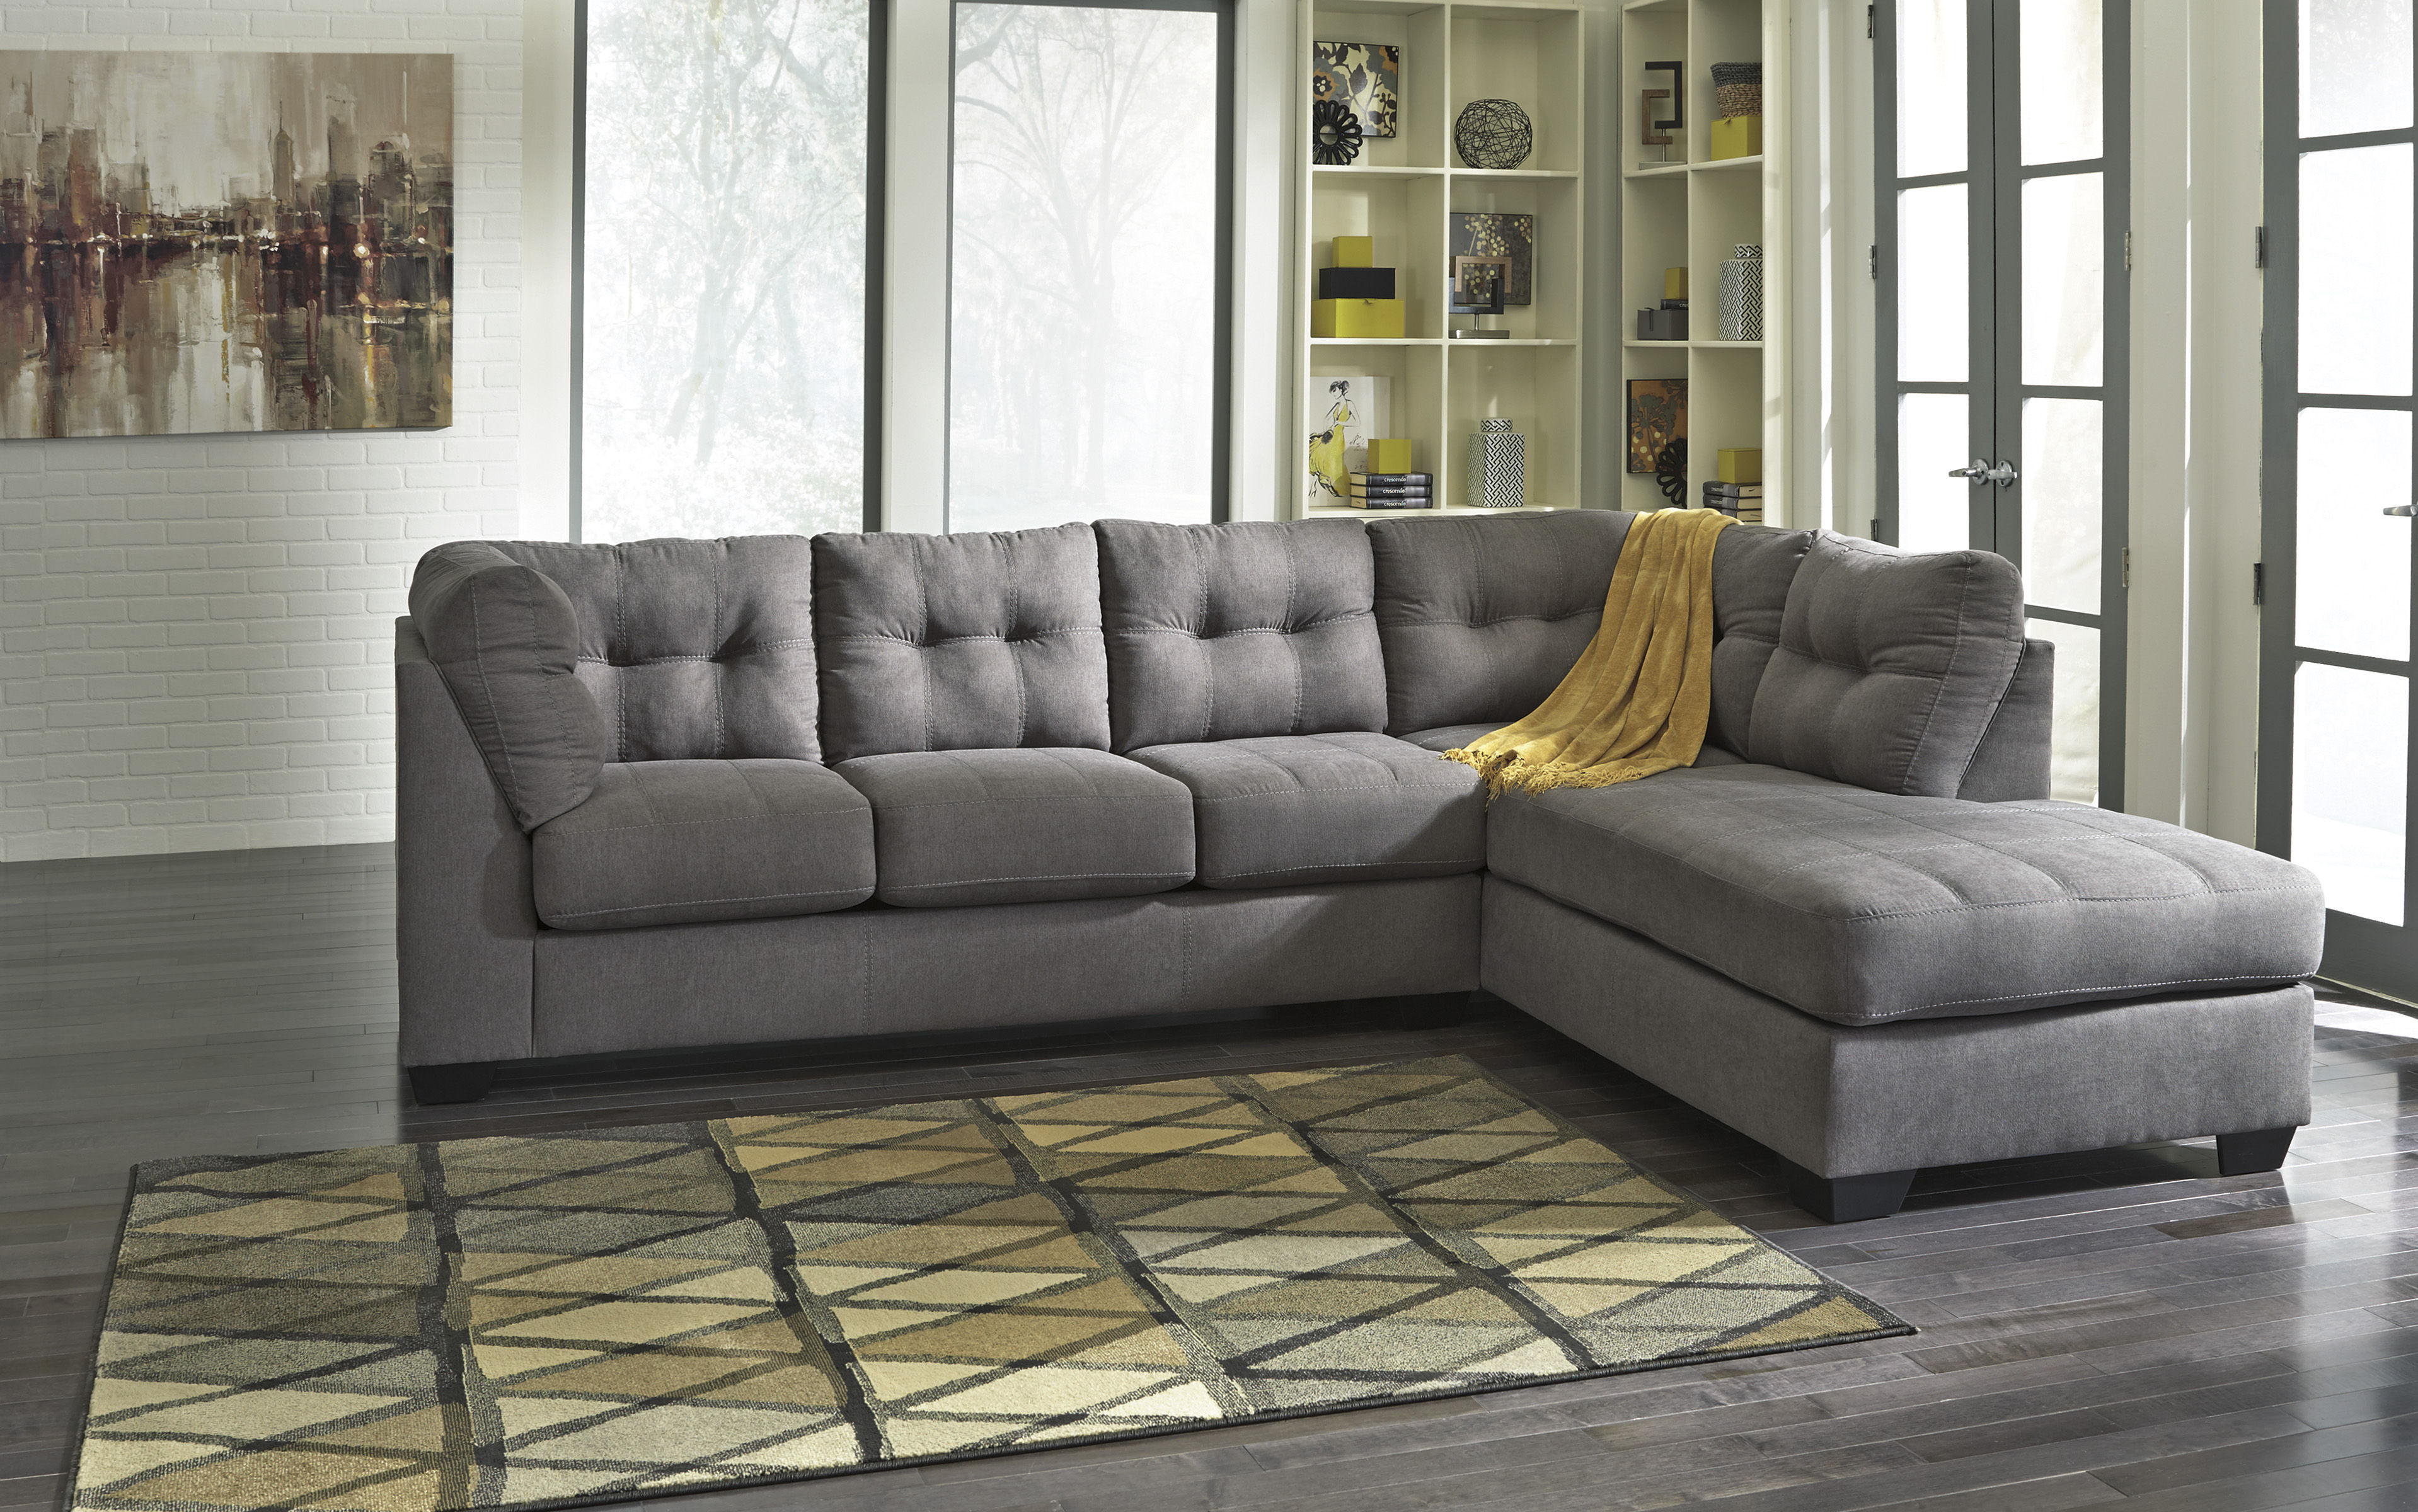 Ashley Furniture Maier Charcoal Raf Chaise Sectional | The Classy Home Throughout Lucy Dark Grey Sofa Chairs (View 4 of 20)